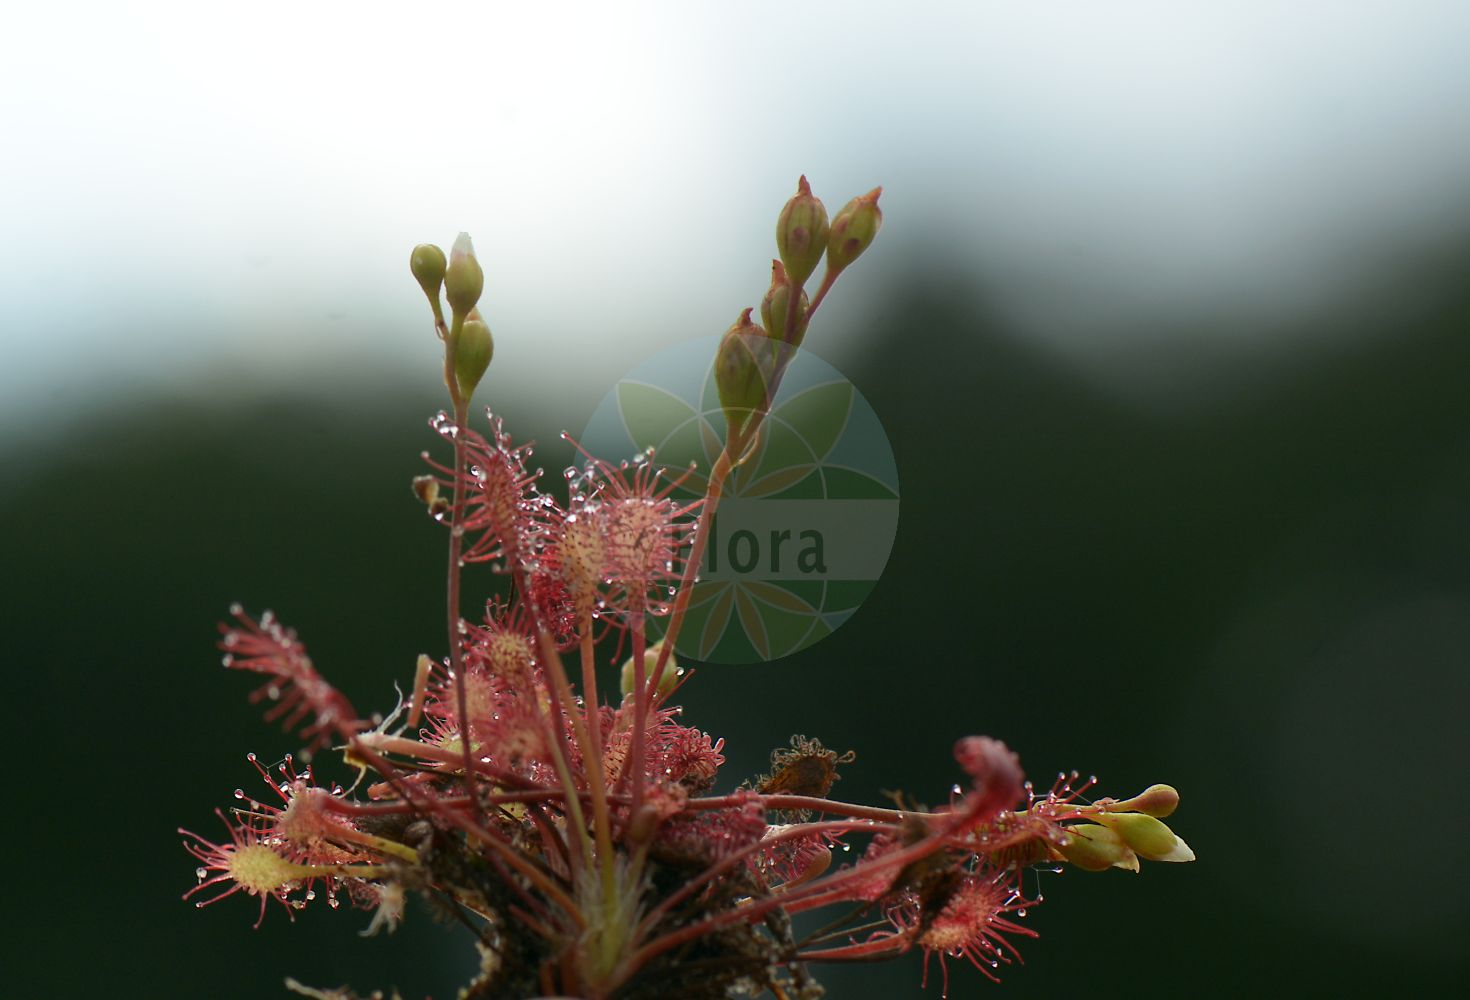 Foto von Drosera intermedia (Mittlerer Sonnentau - Oblong-leaved Sundew). Das Bild zeigt Blatt, Falle, Bluete und Frucht. Das Foto wurde in Sennelager, Paderborn, Nordrhein-Westfalen, Deutschland, Westfaelische Bucht aufgenommen. ---- Photo of Drosera intermedia (Mittlerer Sonnentau - Oblong-leaved Sundew).The image is showing leaf, trap, flower and fruit.The picture was taken in Sennelager, Paderborn, North Rhine-Westphalia, Germany, Westfaelische Bucht. (Drosera intermedia,Mittlerer Sonnentau,Oblong-leaved Sundew,Long-leaved Sundew,Spoonleaf Sundew,Great Sundew,Drosera,Sonnentau,Sundew,Droseraceae,Sonnentaugewaechse,Sundew family,Blatt,Falle,Bluete,Frucht,leaf,trap,flower,fruit)